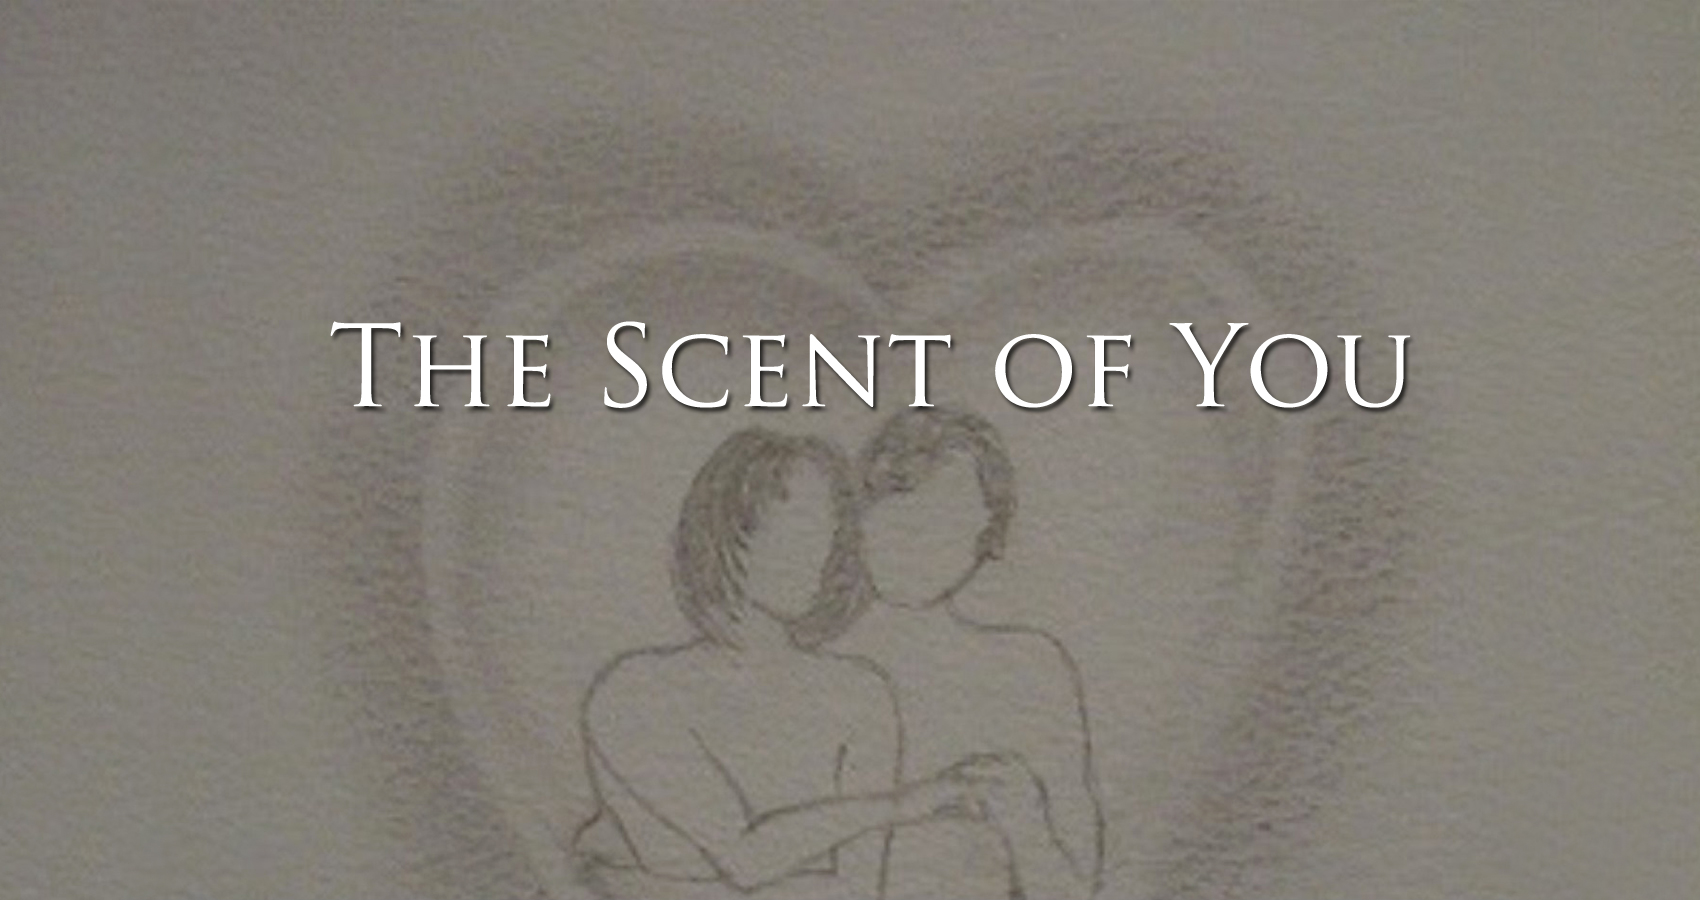 The Scent of You written by SapphireRose at Spillwords.com